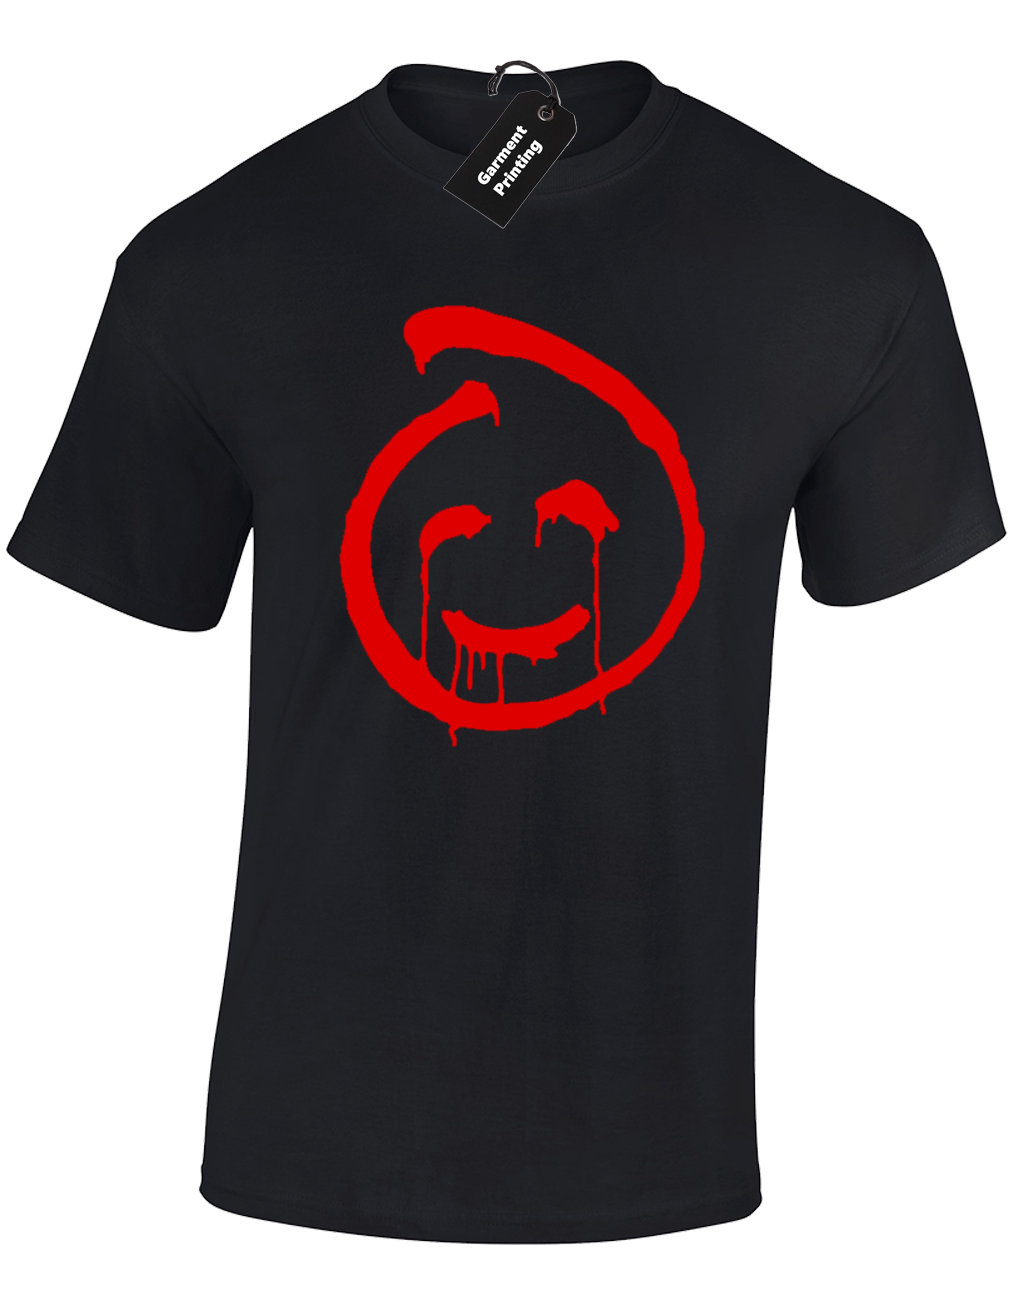 <font><b>THE</b></font> MENTALIST RED JOHN MENS T SHIRT FBI PSYCHIC <font><b>CULT</b></font> SLOGAN HORROR NOVELTY TEE Cool Casual pride t shirt men Unisex New <font><b>tshirt</b></font> image